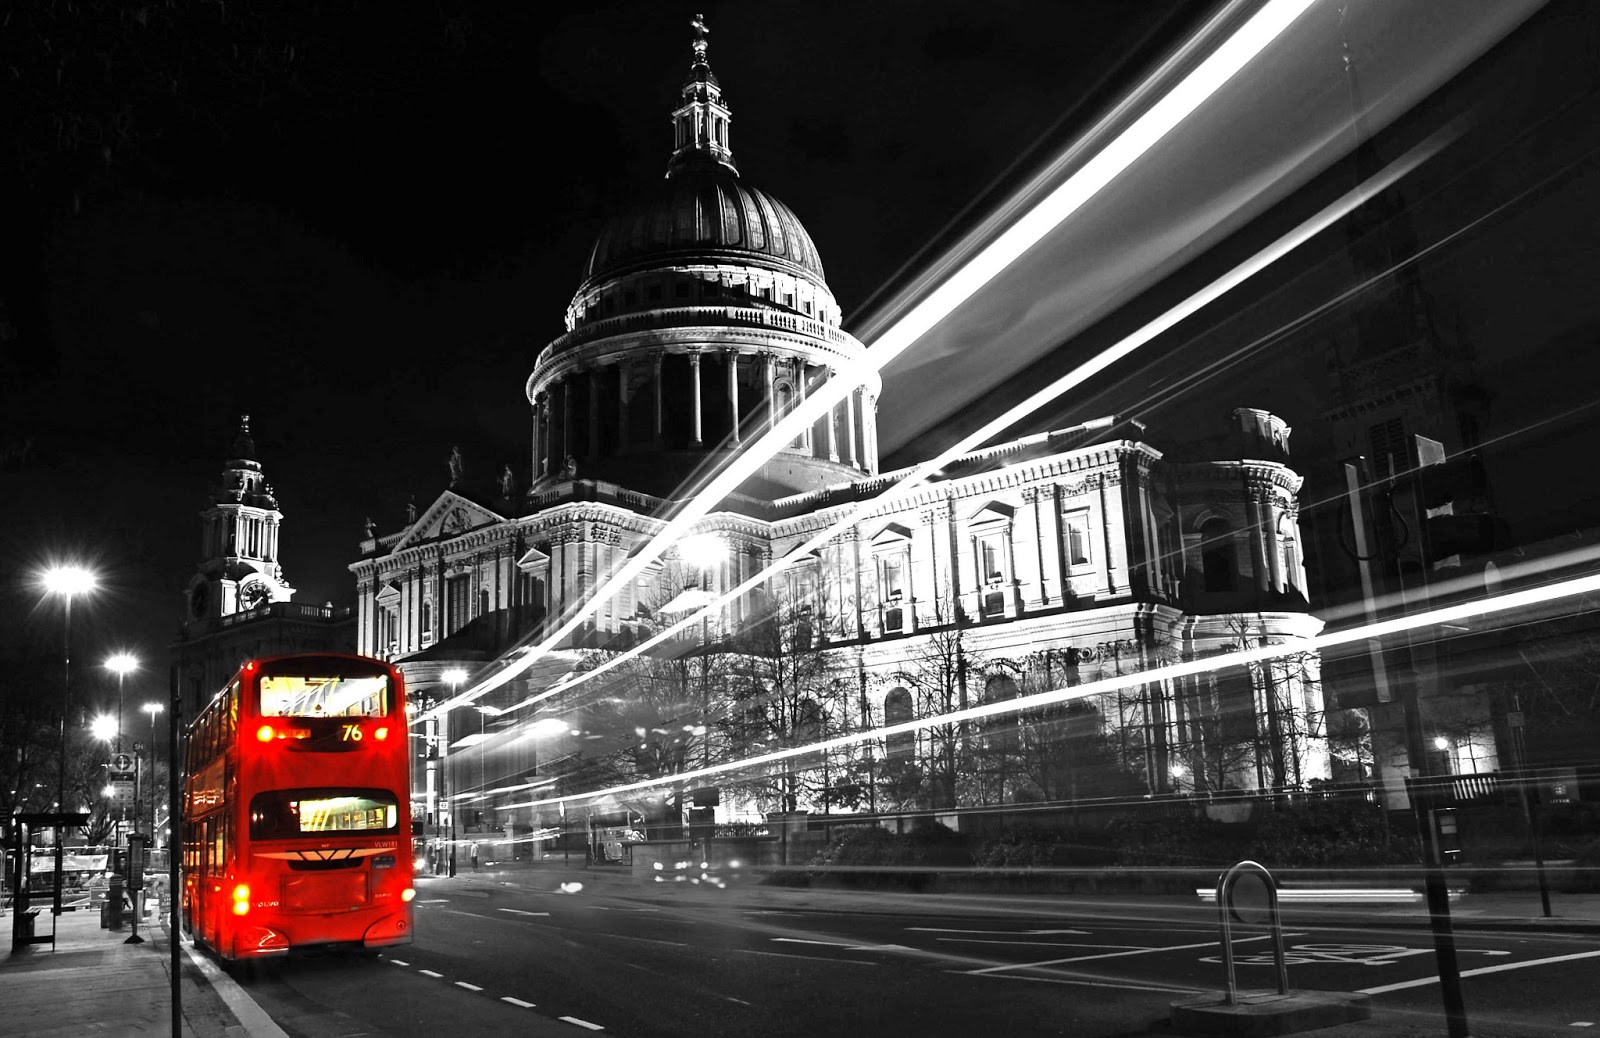 London bus black and white photography with color | Black and